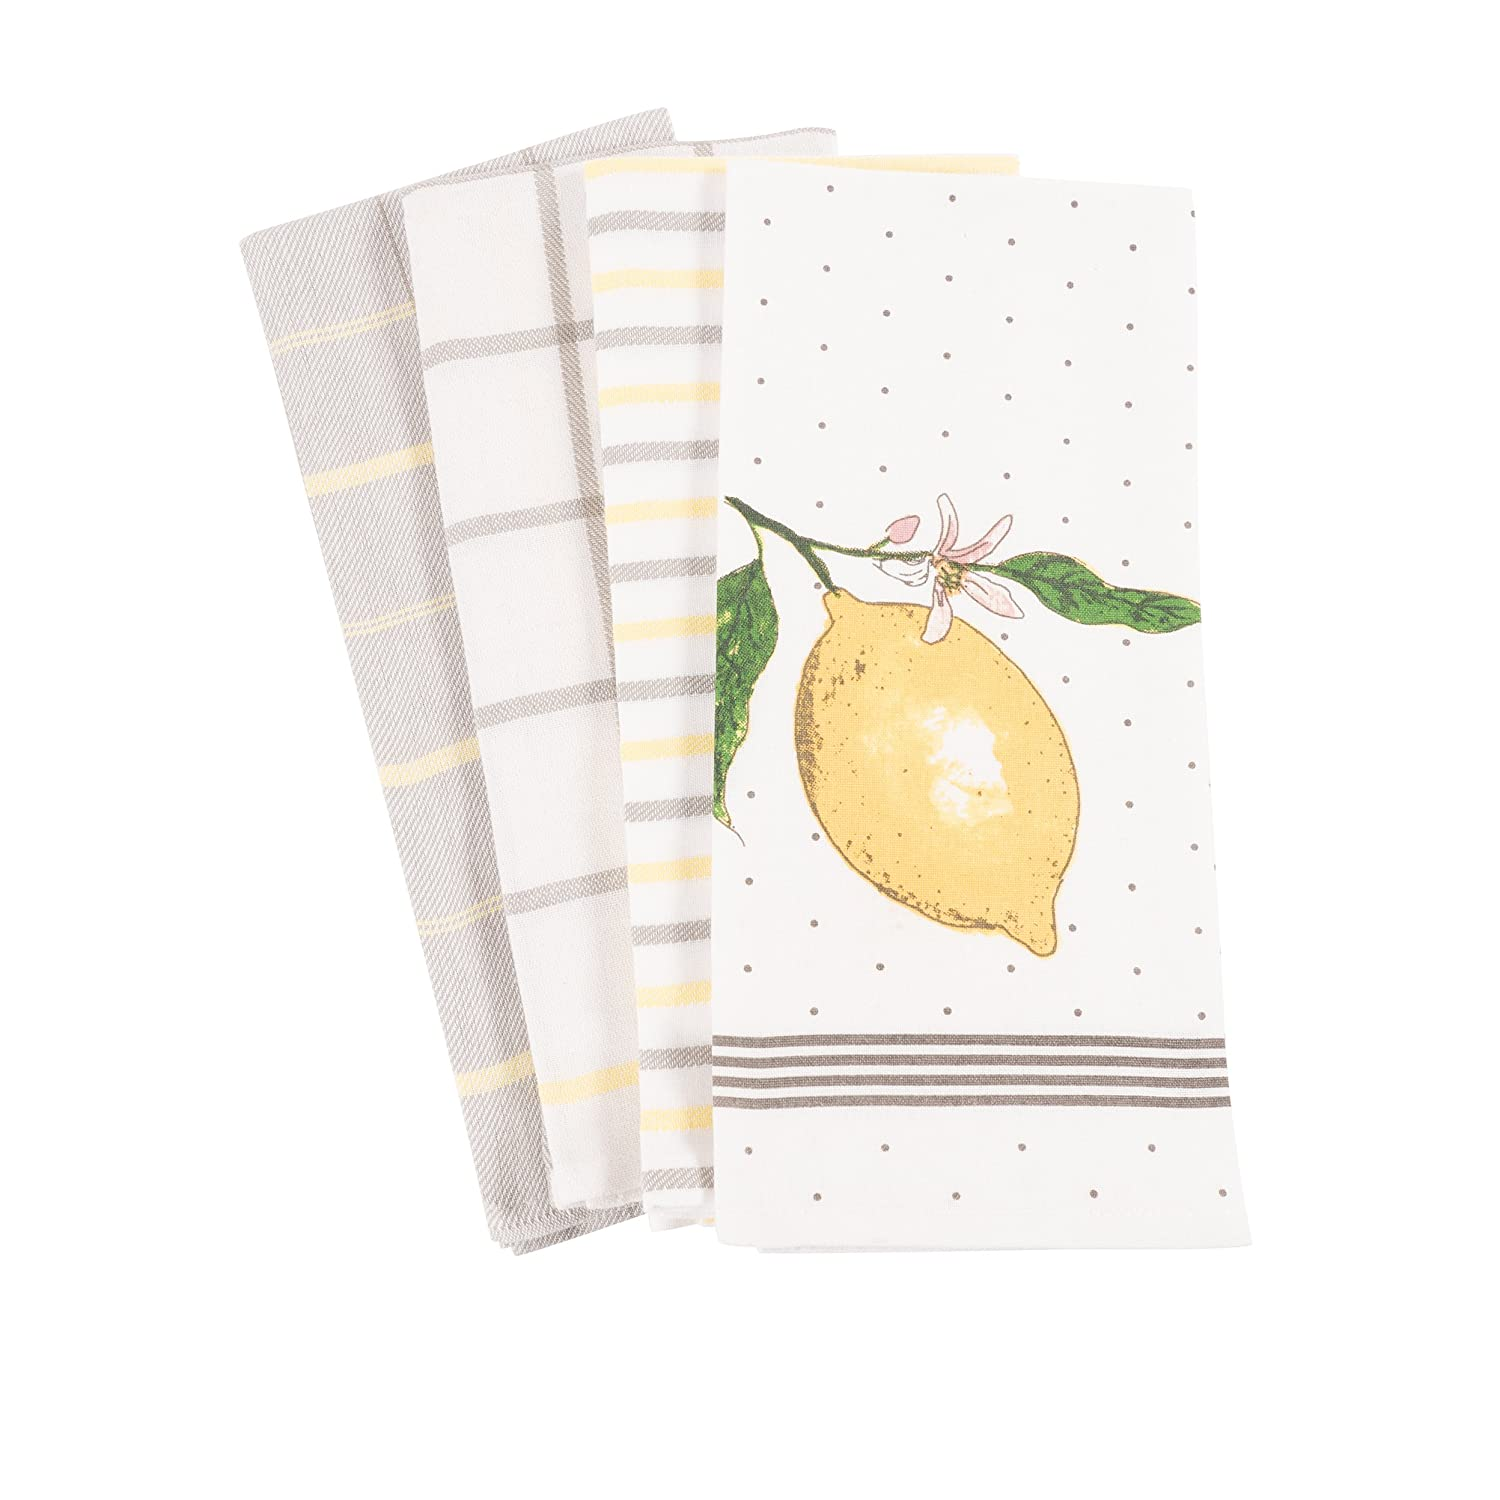 Pantry Lemon Kitchen Dish Towel Set of 4, 100-Percent Cotton, 18 x 28-inch